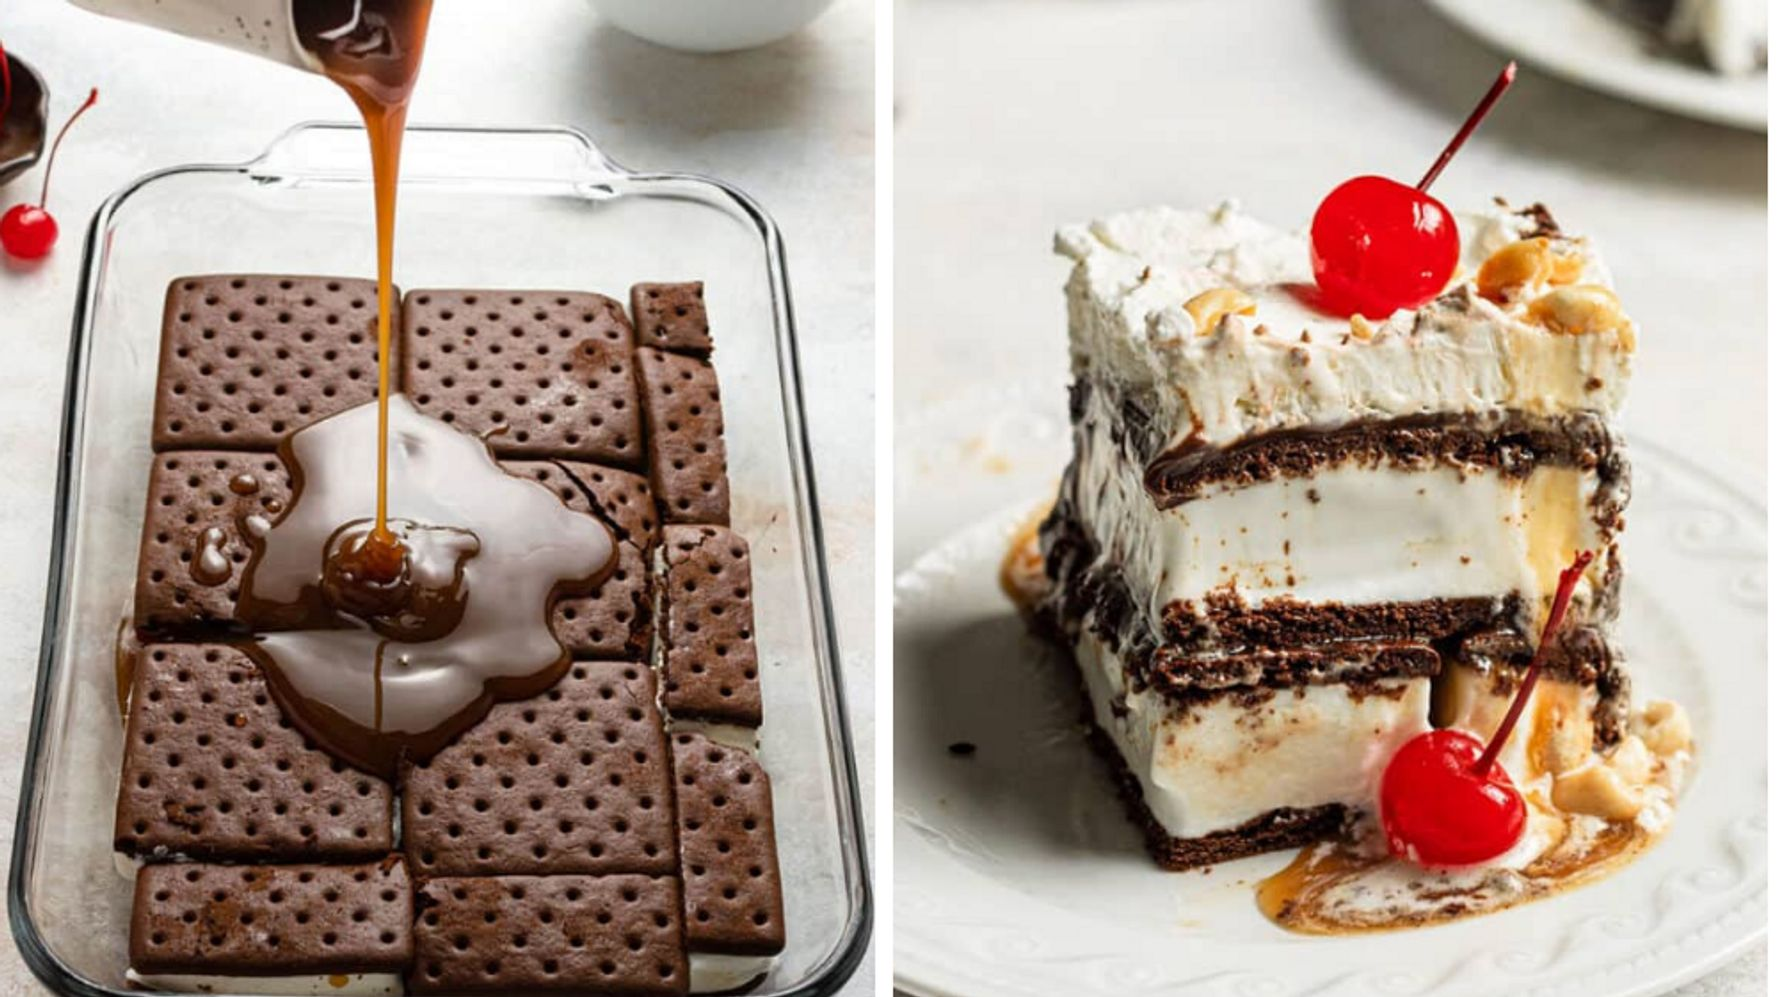 15 Easy Ice Cream Cake Recipes